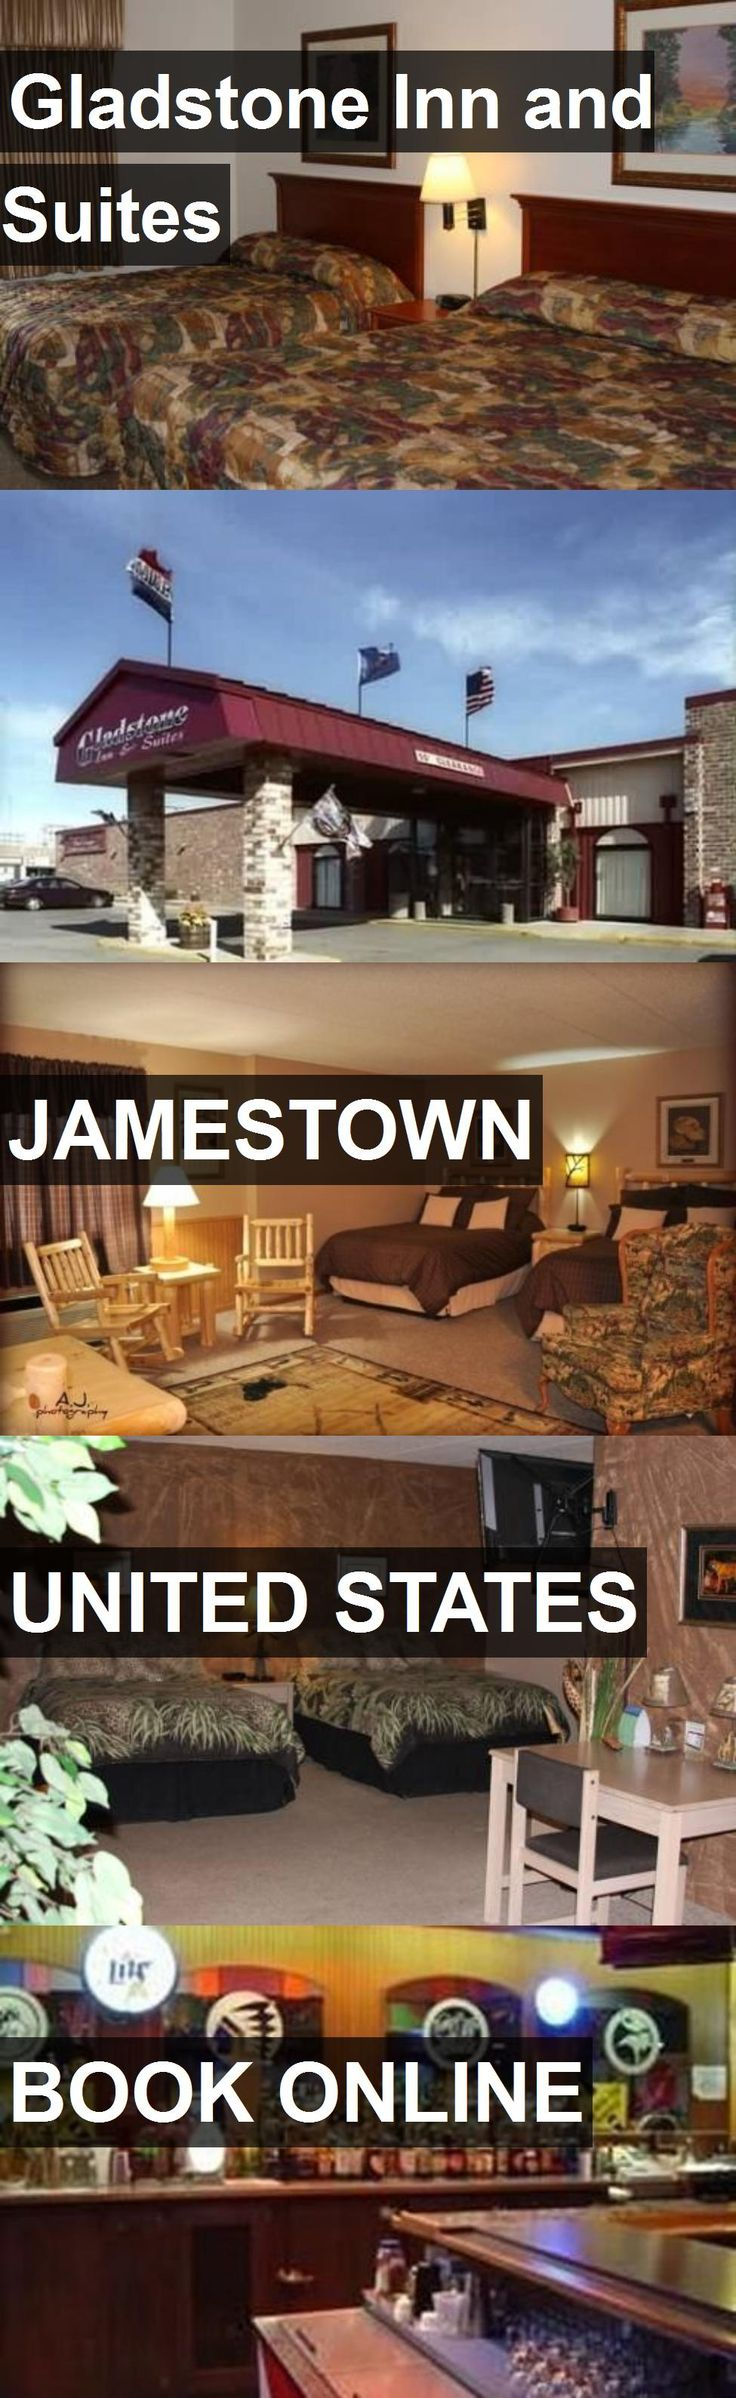 Hotel Gladstone Inn and Suites in Jamestown, United States. For more information, photos, reviews and best prices please follow the link. #UnitedStates #Jamestown #hotel #travel #vacation